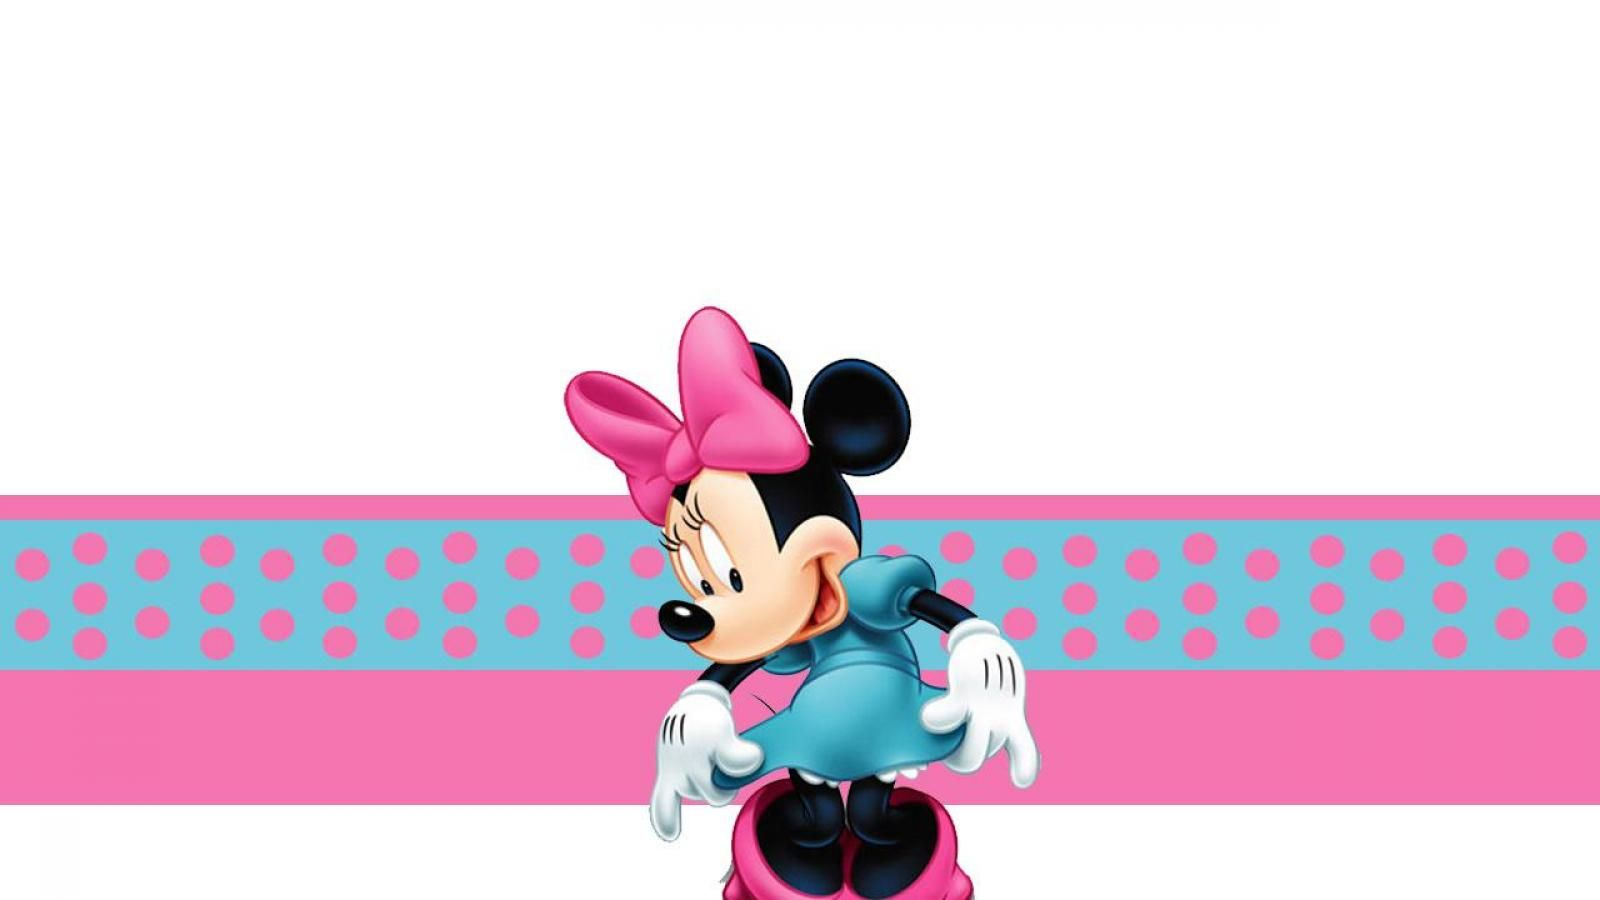 Wallpapers Collection «Minnie Mouse Wallpapers» (с